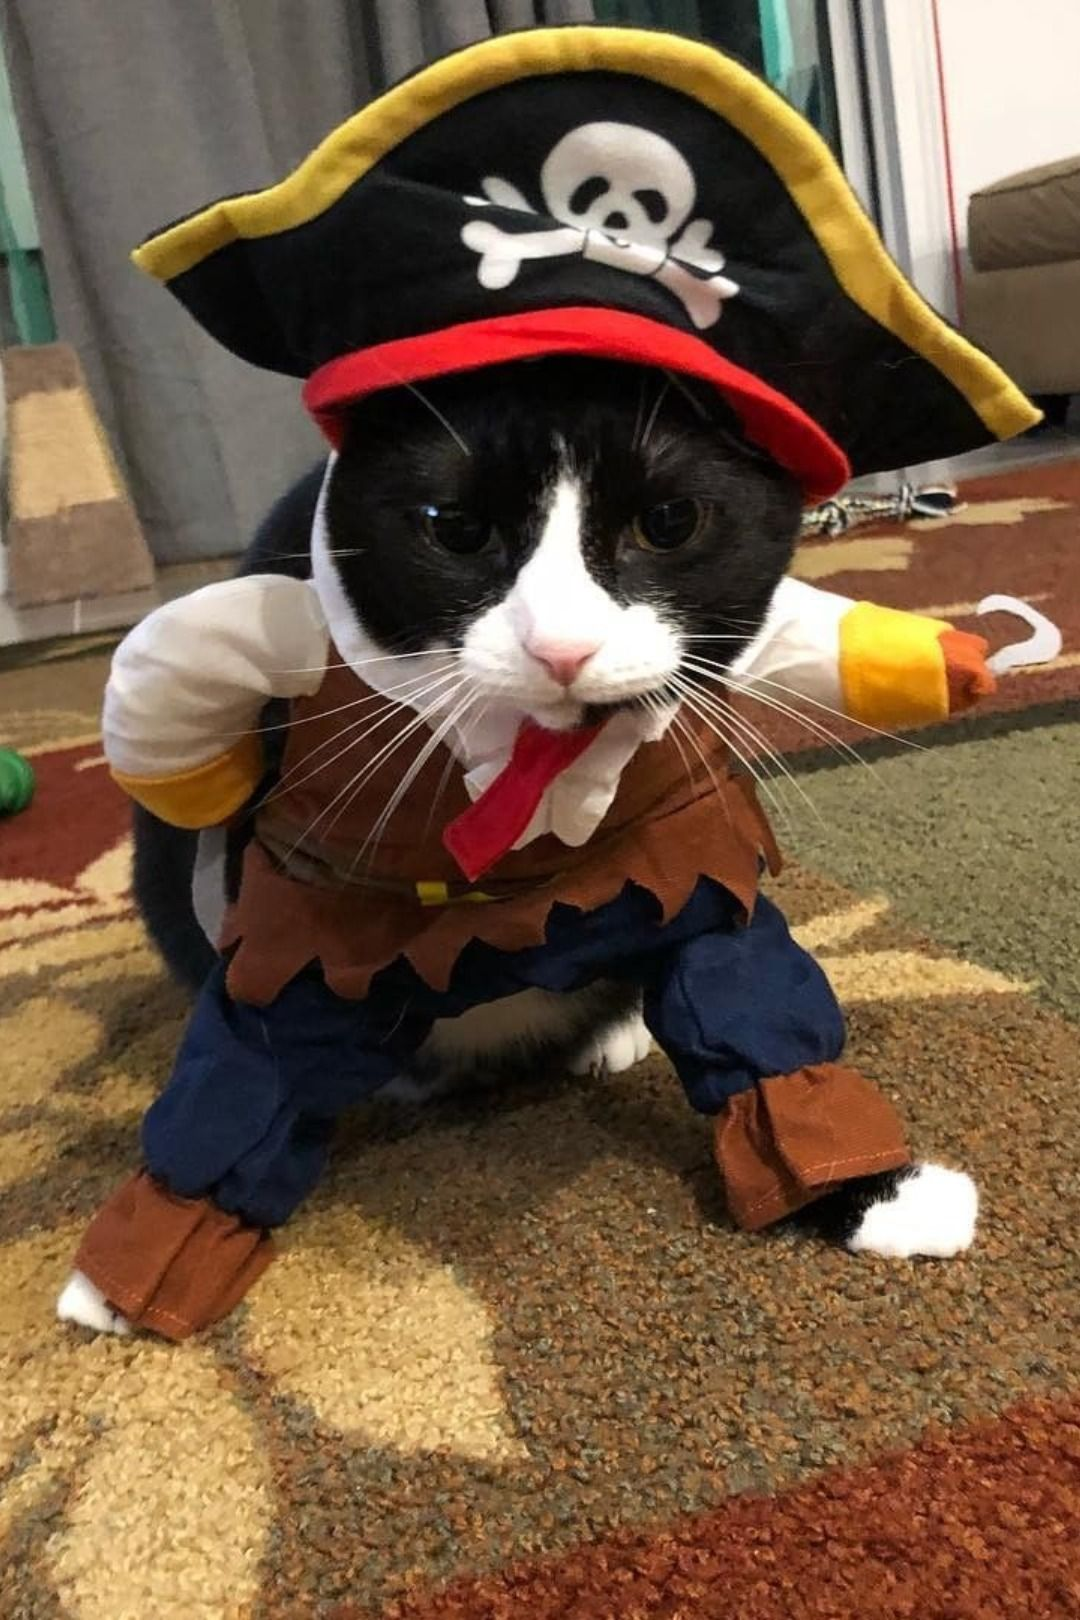 Funny cat dressed up in a pirate costume for Halloween